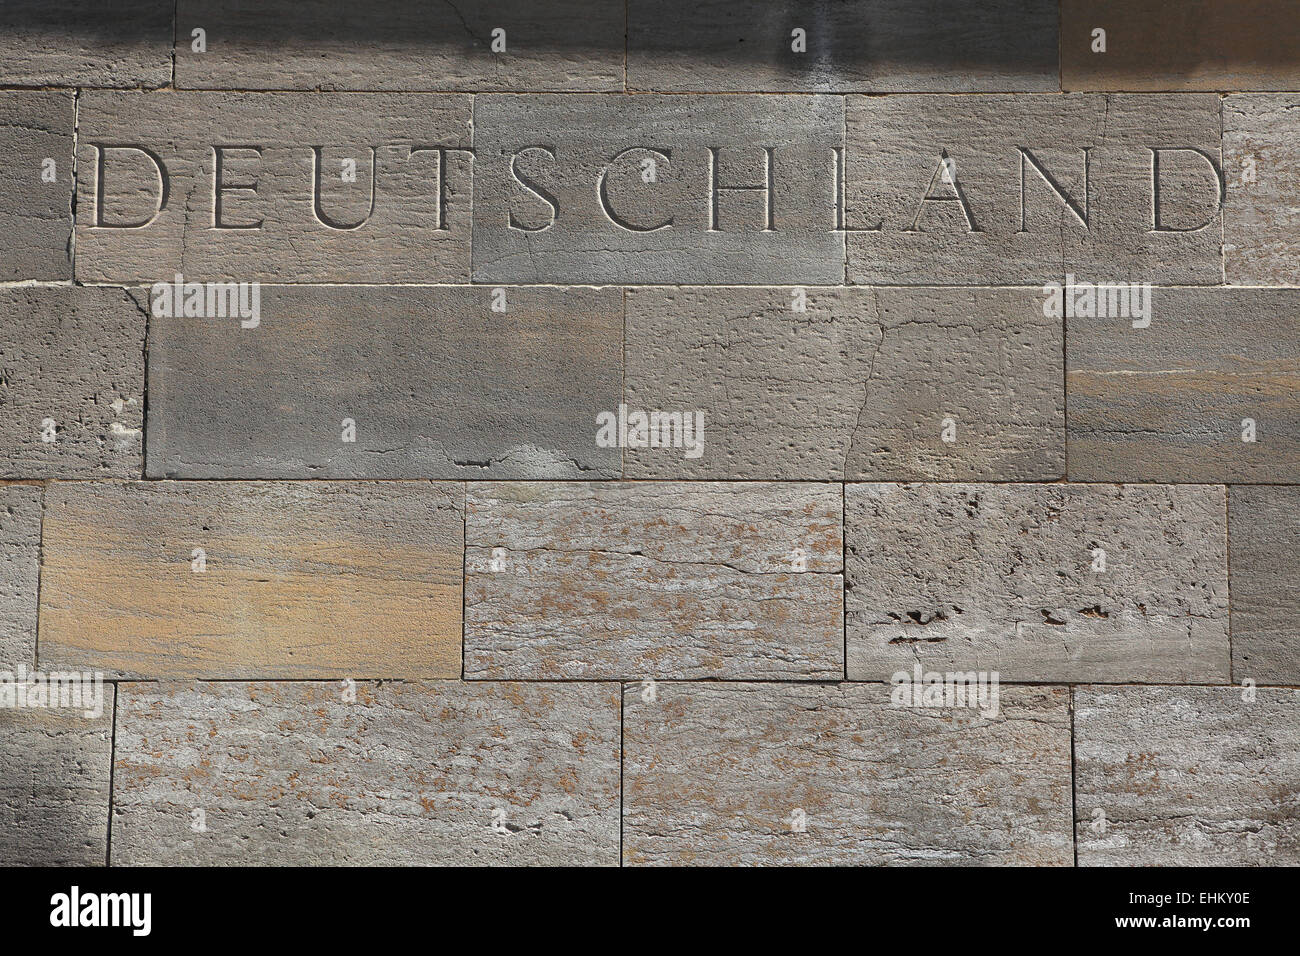 Deutschland (Germany). Word carved into the stone blocks. - Stock Image